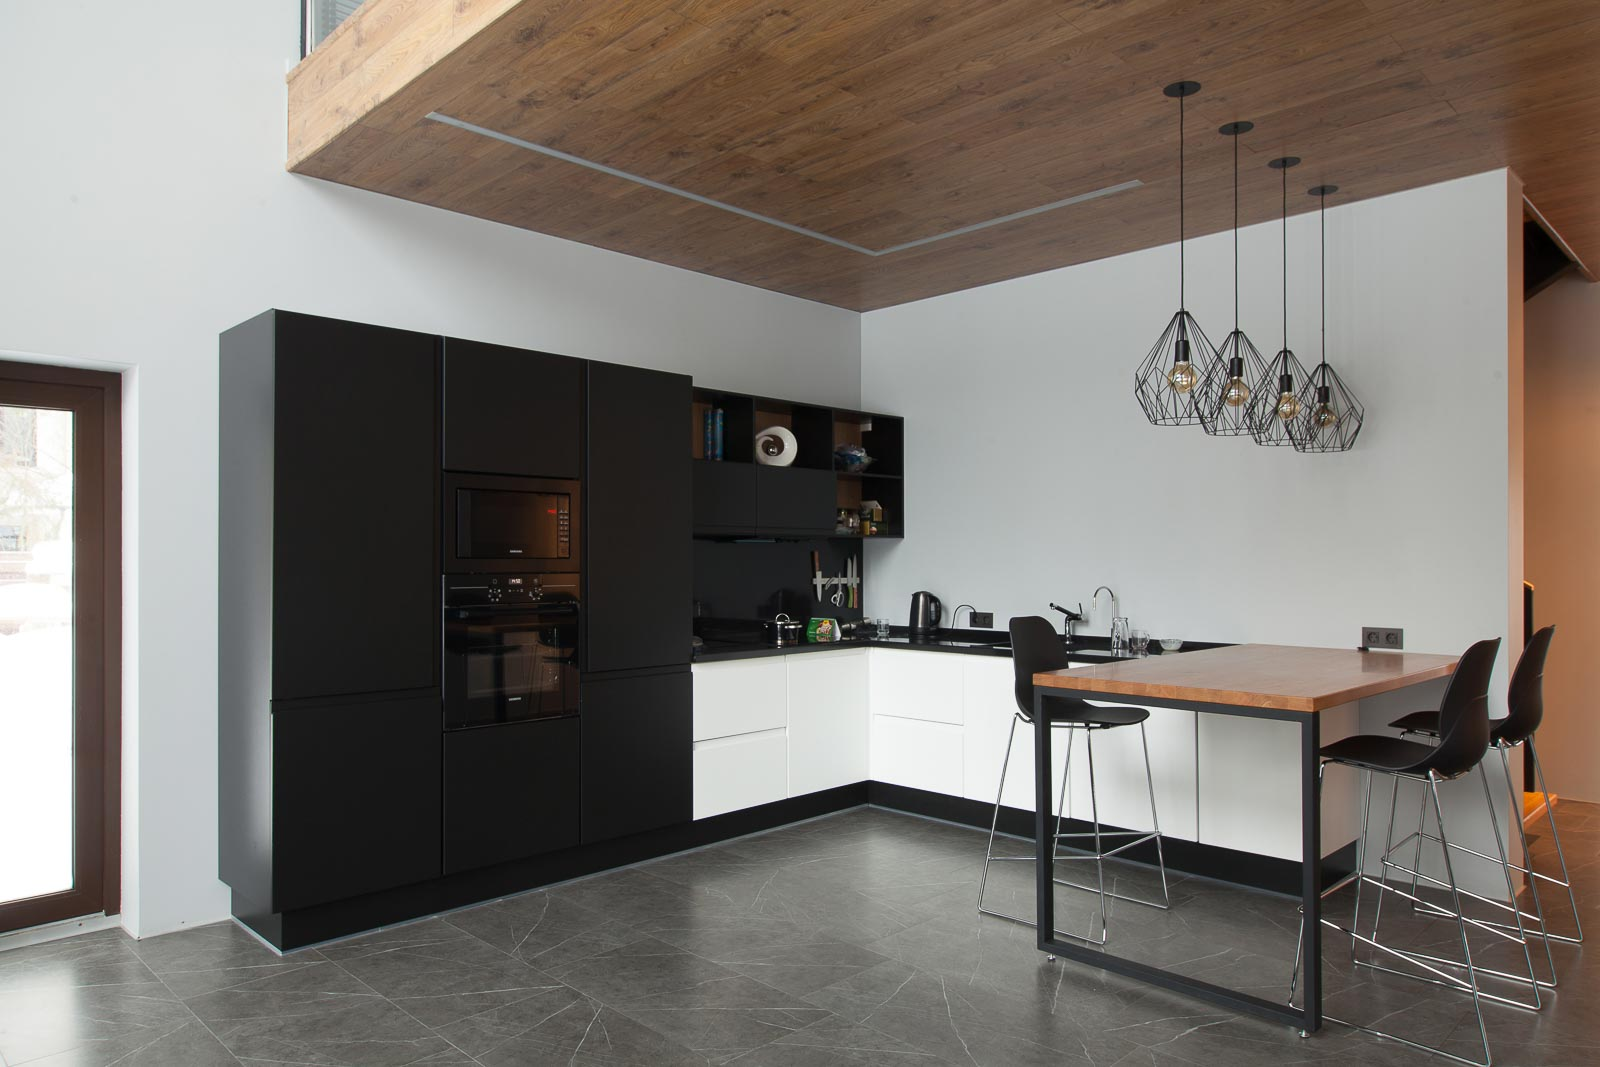 Black and white kitchen with wooden ceiling and floor with grey tiles